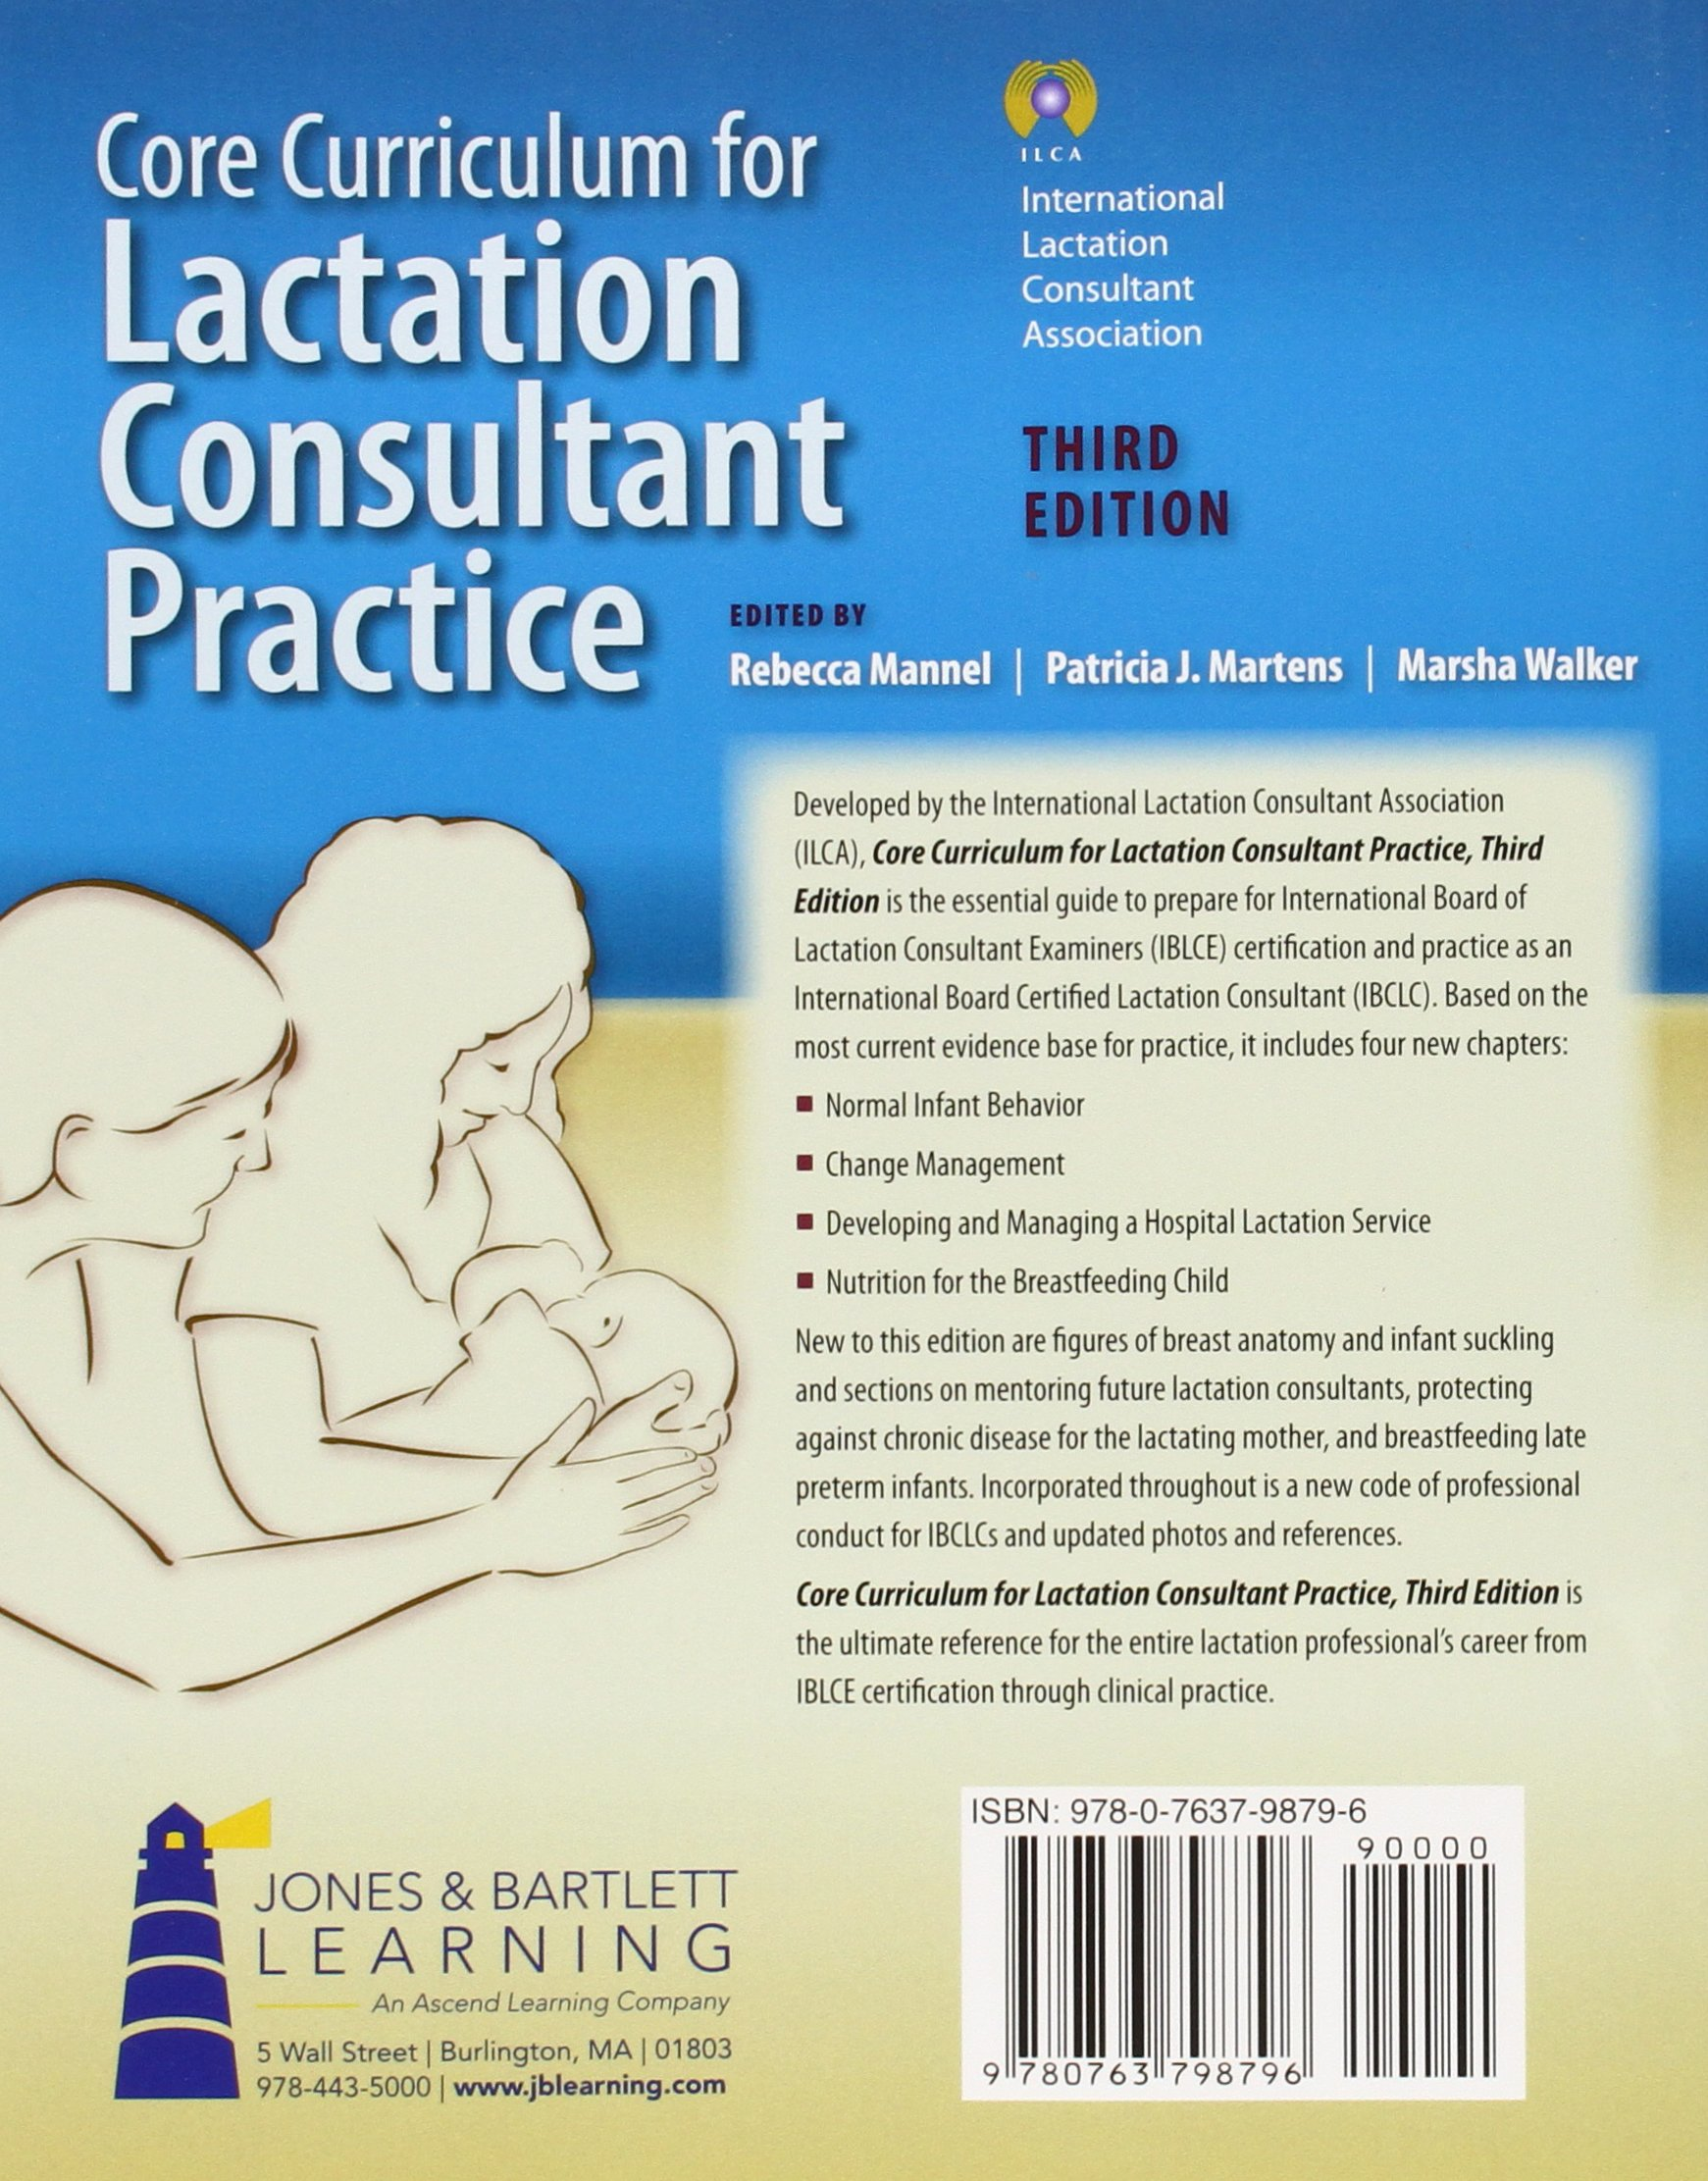 Buy core curriculum for lactation consultant practice book online buy core curriculum for lactation consultant practice book online at low prices in india core curriculum for lactation consultant practice reviews 1betcityfo Choice Image